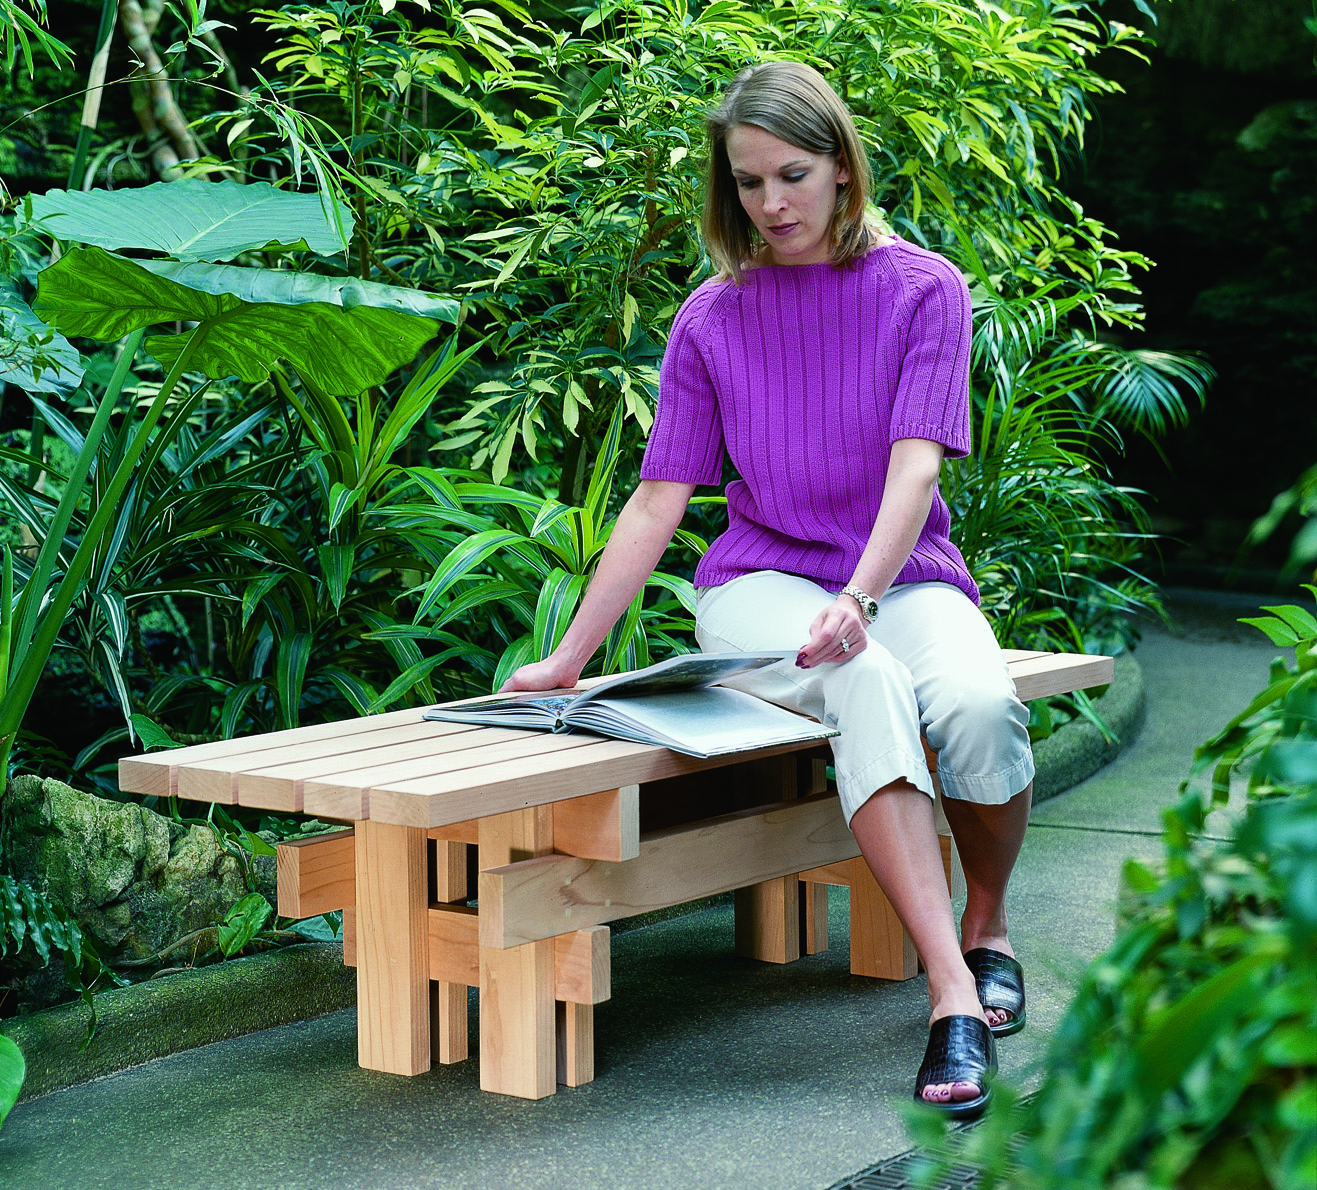 Popular Woodworking cover image